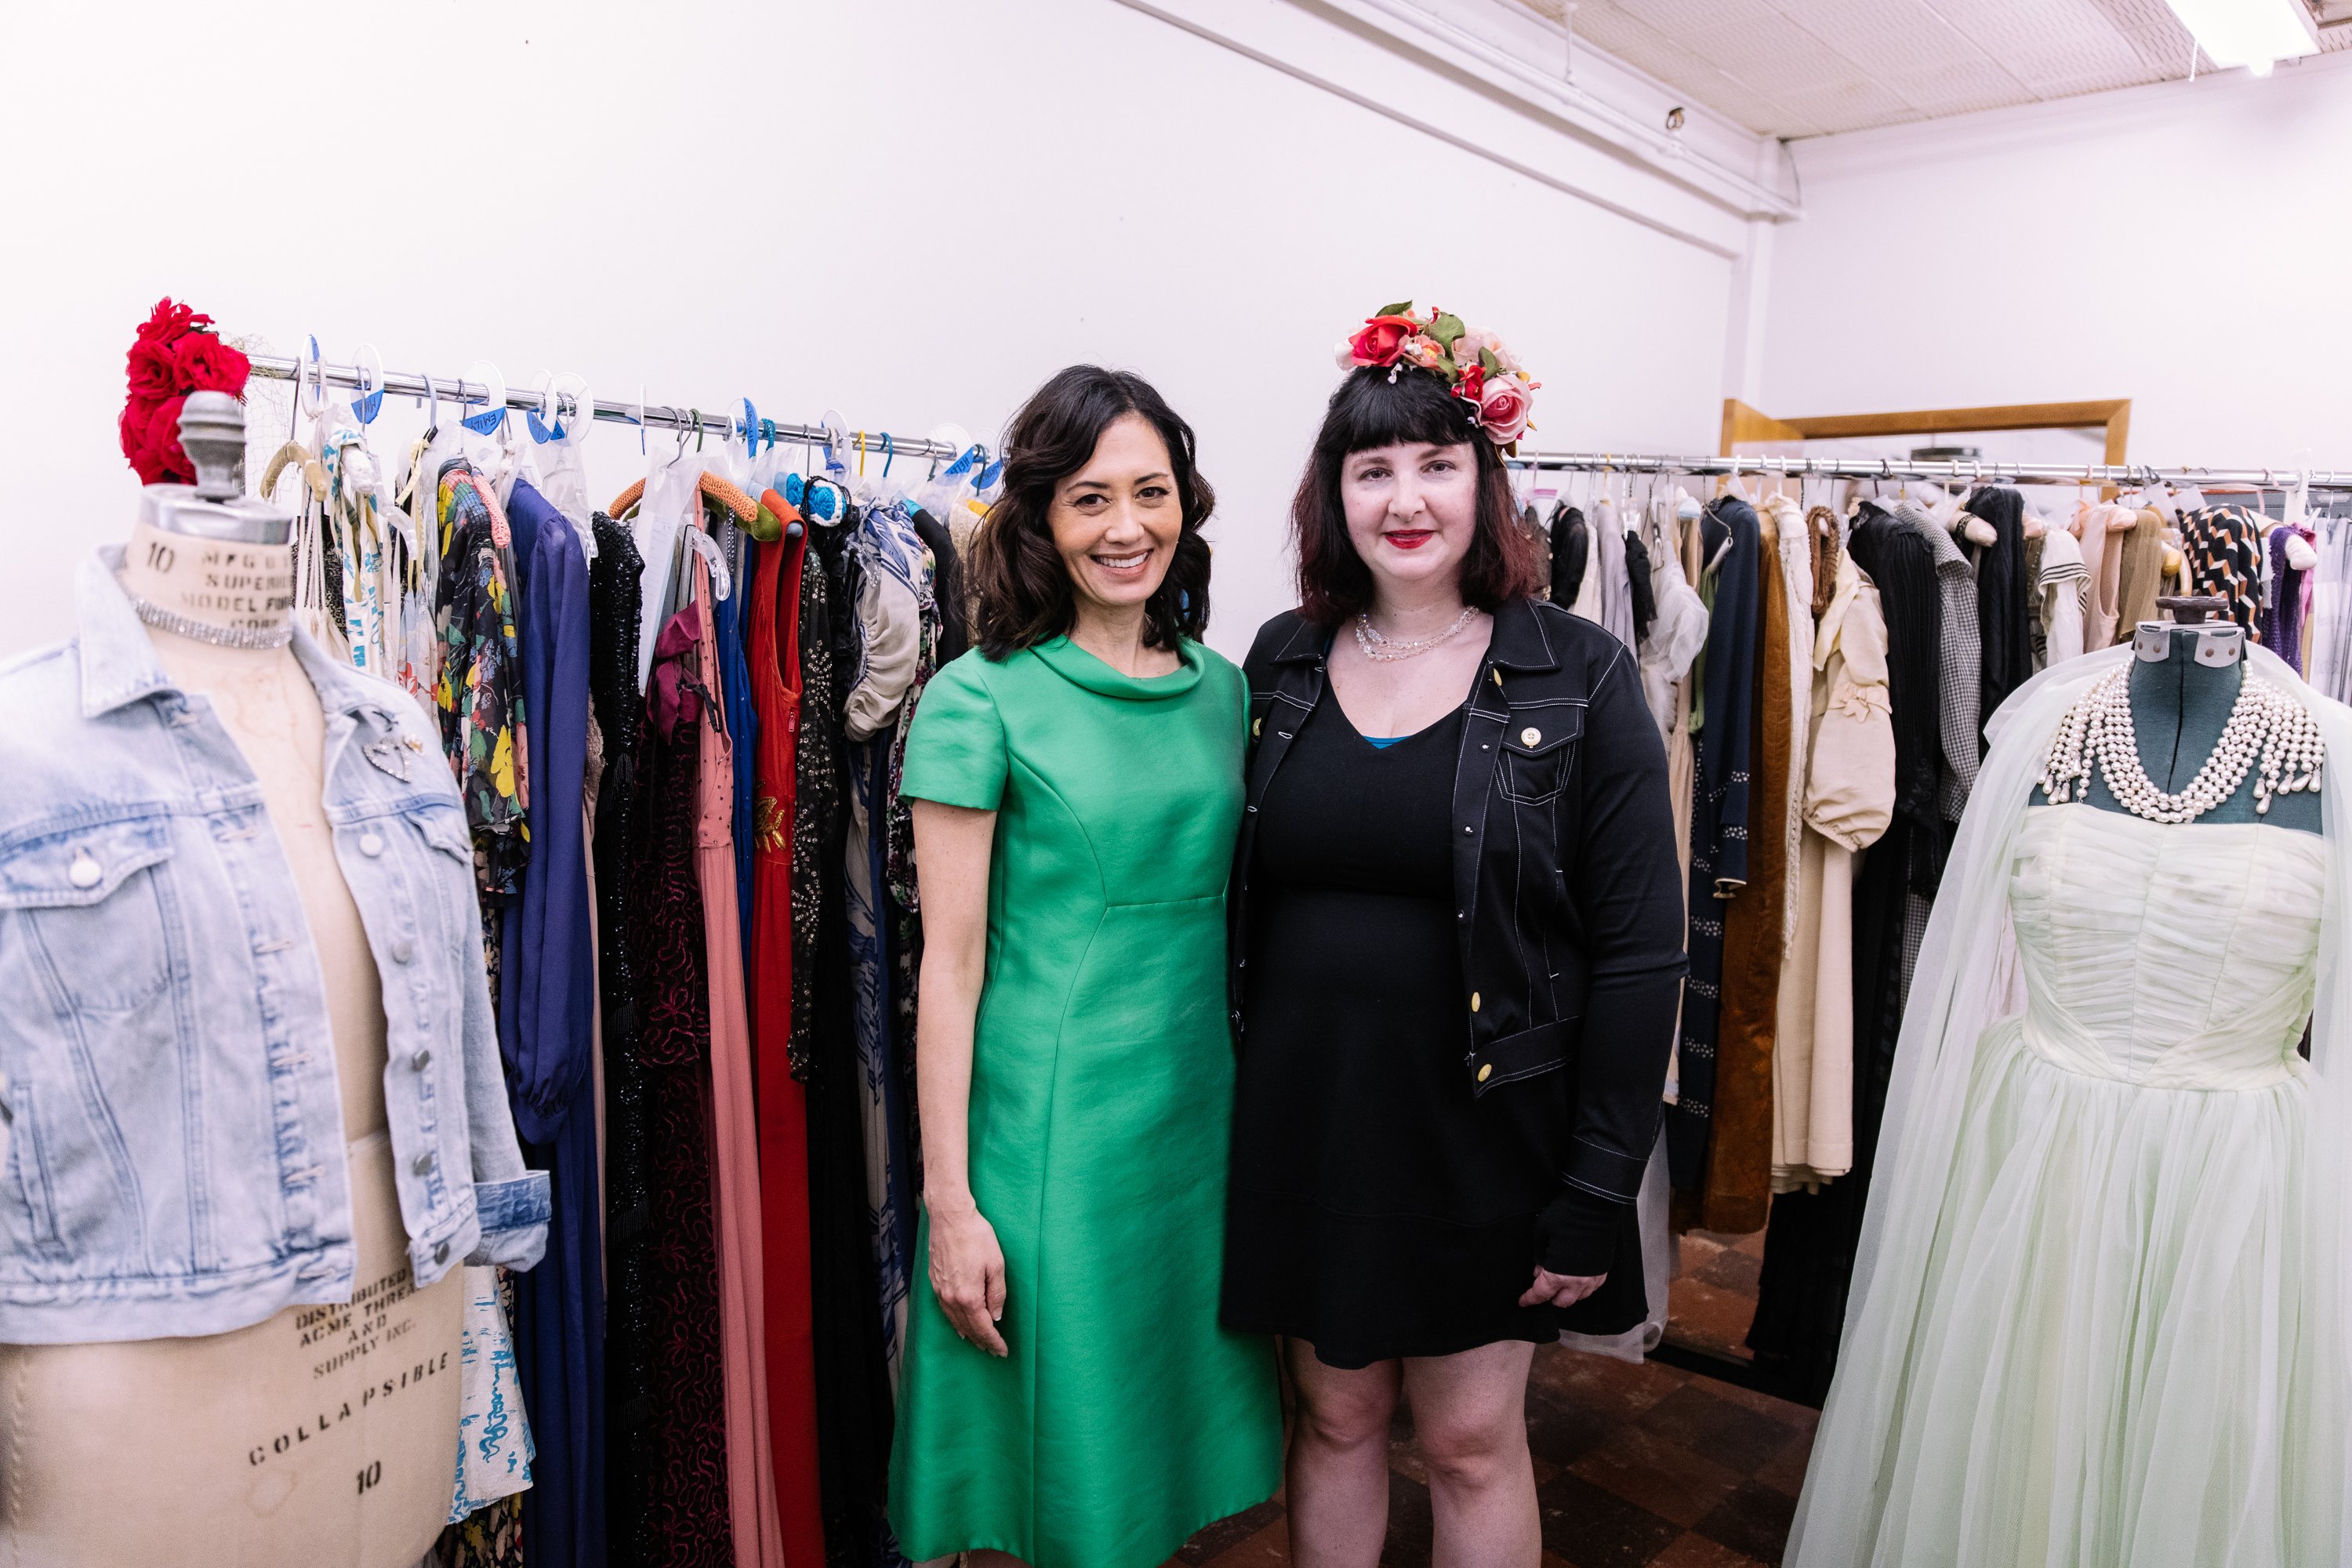 You probably know that Seattle Goodwill is a great place to score the latest looks for less. But it's also a treasure trove of amazing vintage finds! There are more than 1,900 garments, 900 shoes, 500 hats and 1000 pieces of jewelry, gloves and other accessories in the collection. (Courtesy: Seattle Goodwill)